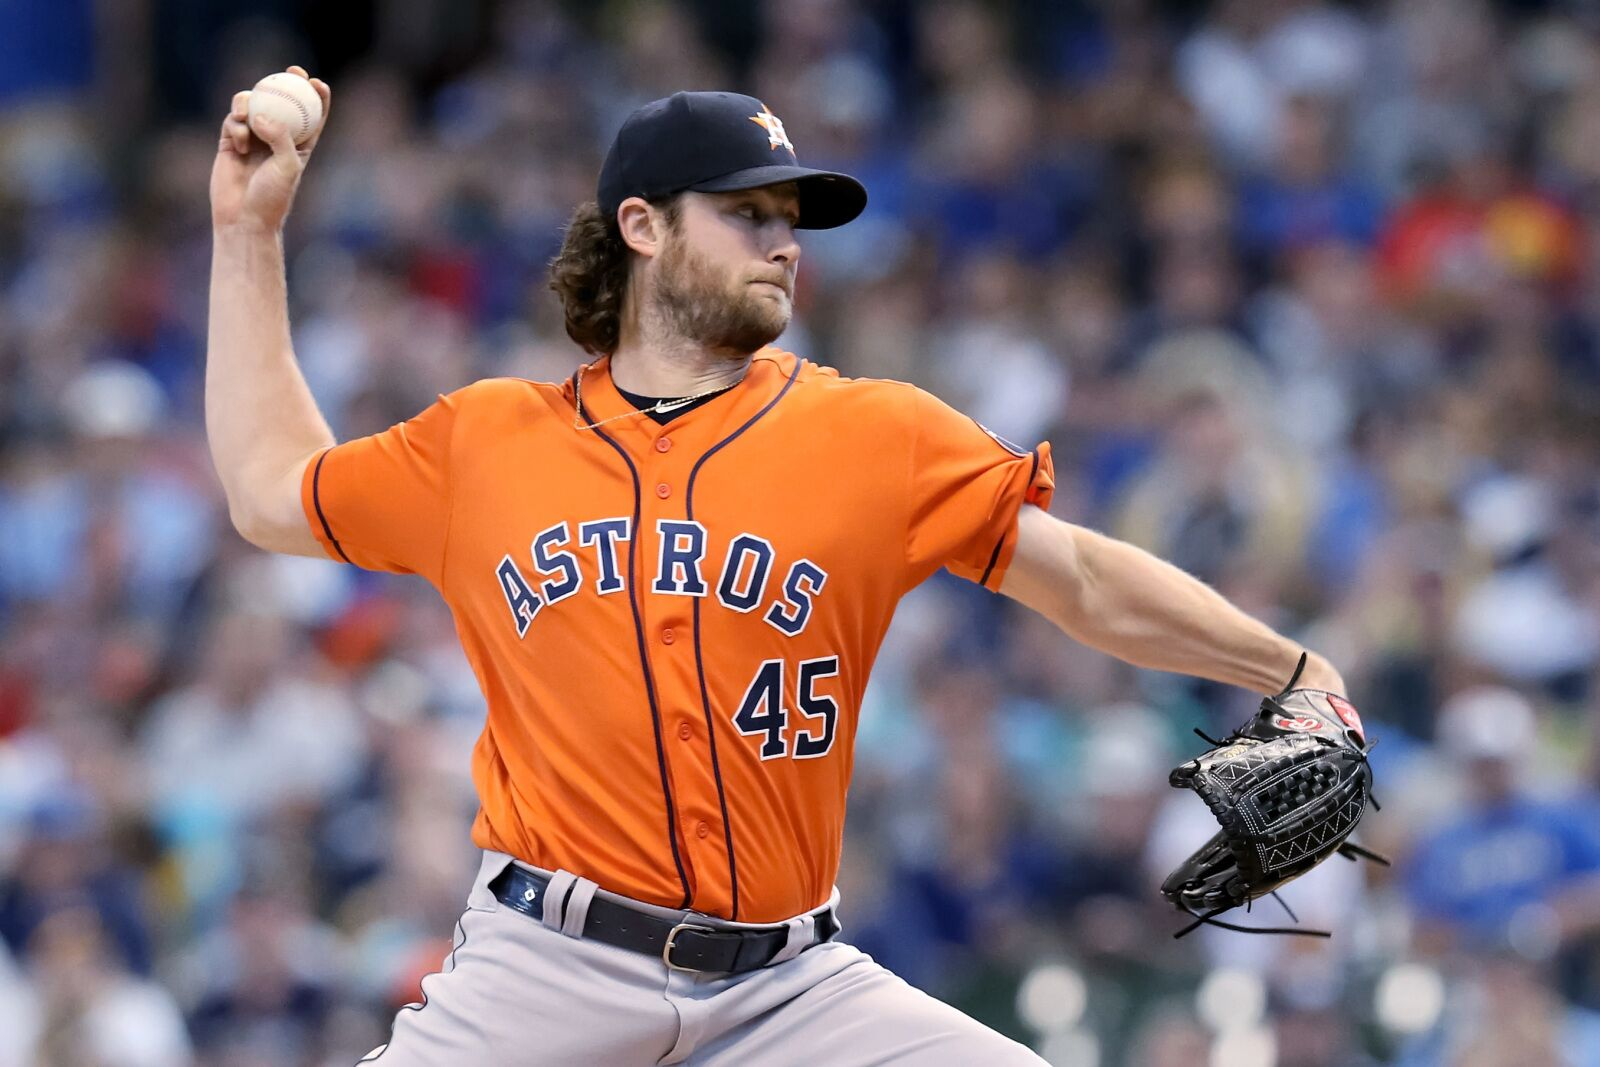 Yankees: Gerrit Cole is unlikely to sign new deal before January